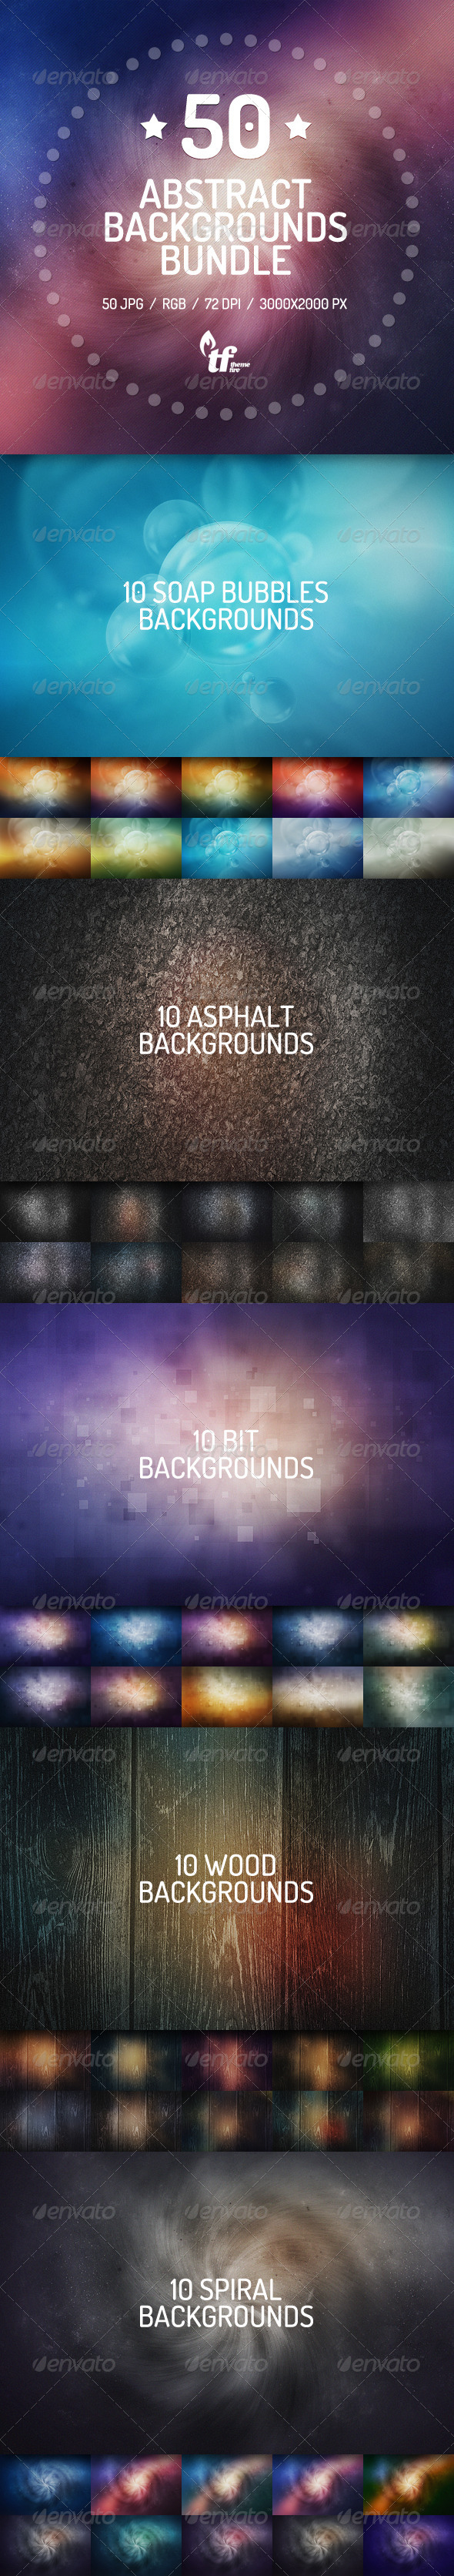 GraphicRiver 50 Abstract Backgrounds Bundle 7588986